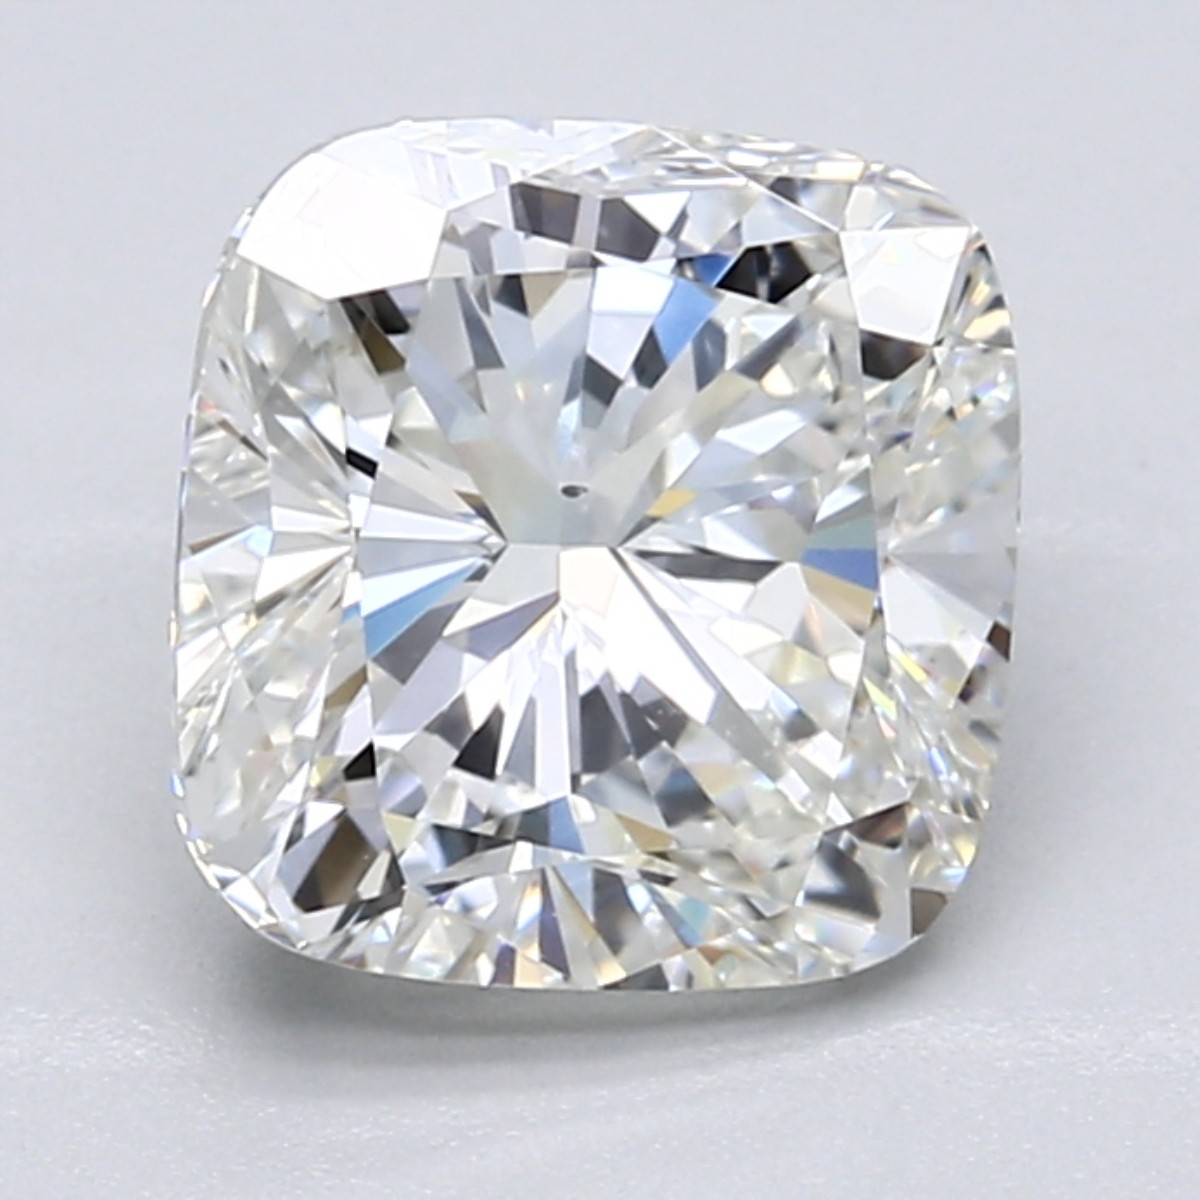 Cushion 3.06 Carat G Color VS2 Clarity For Sale